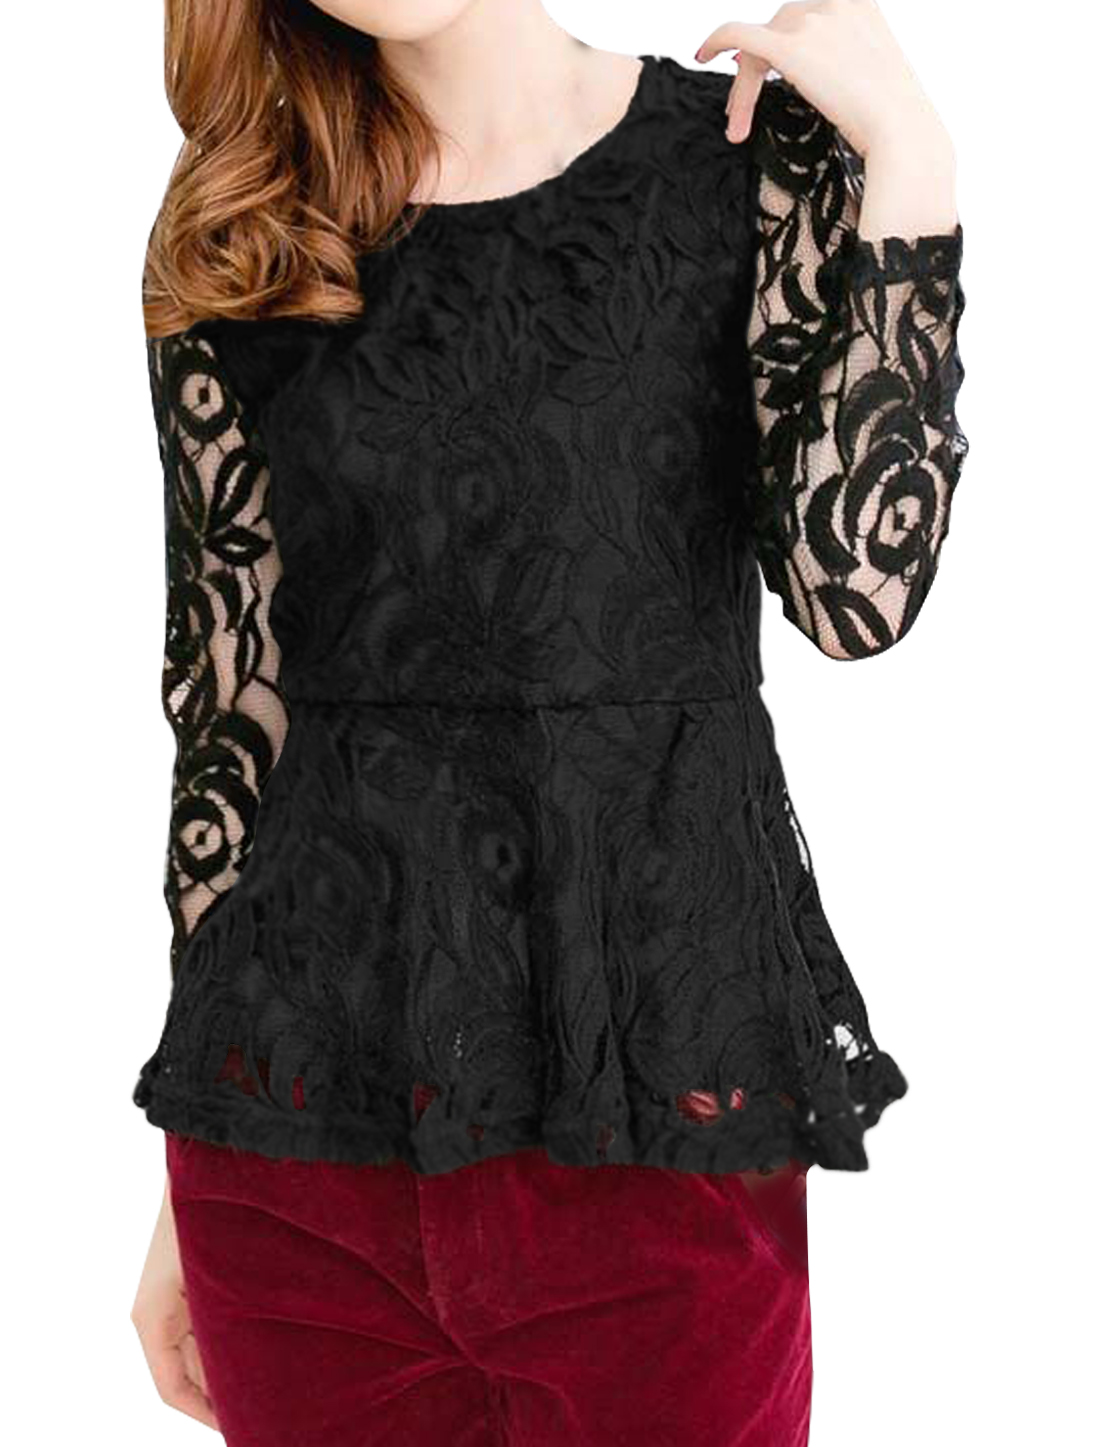 Ladies Round Neck Long Sleeves Slim Fit Casual Lace Top Black S